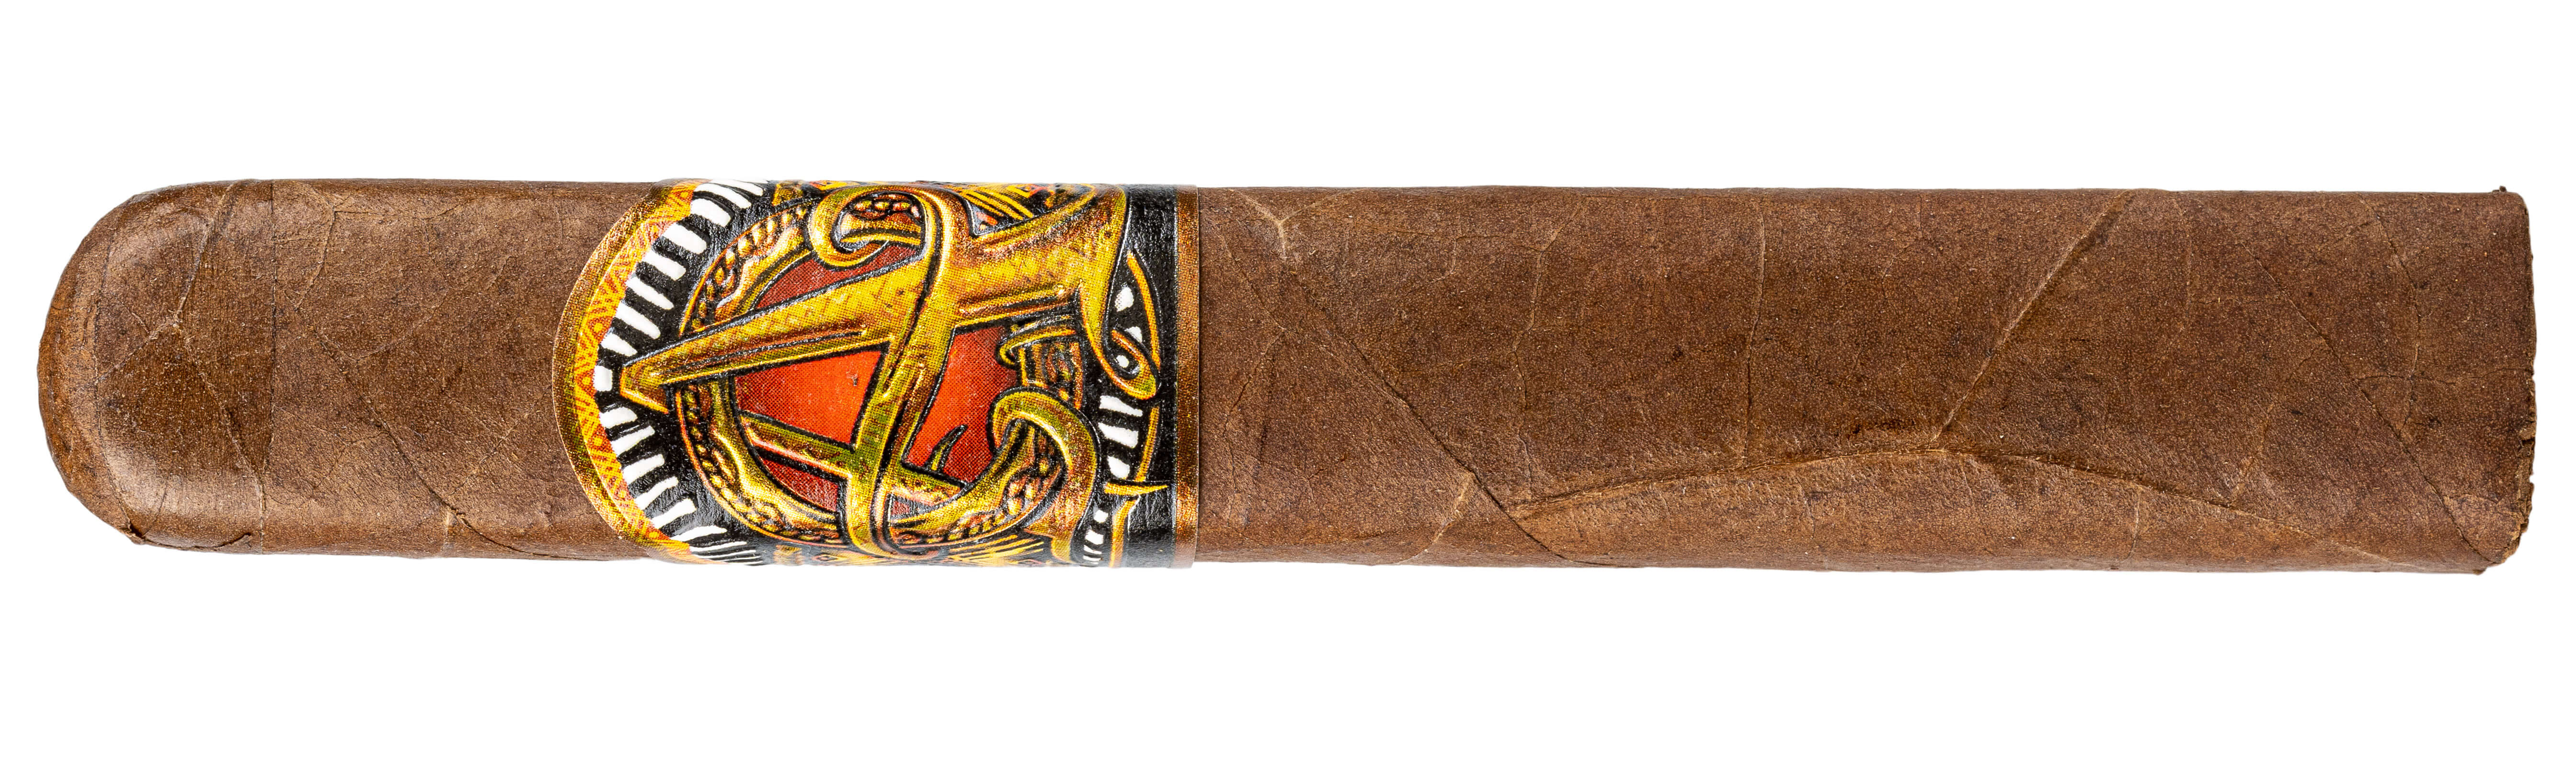 Blind Cigar Review: Don Lino Africa | Duma